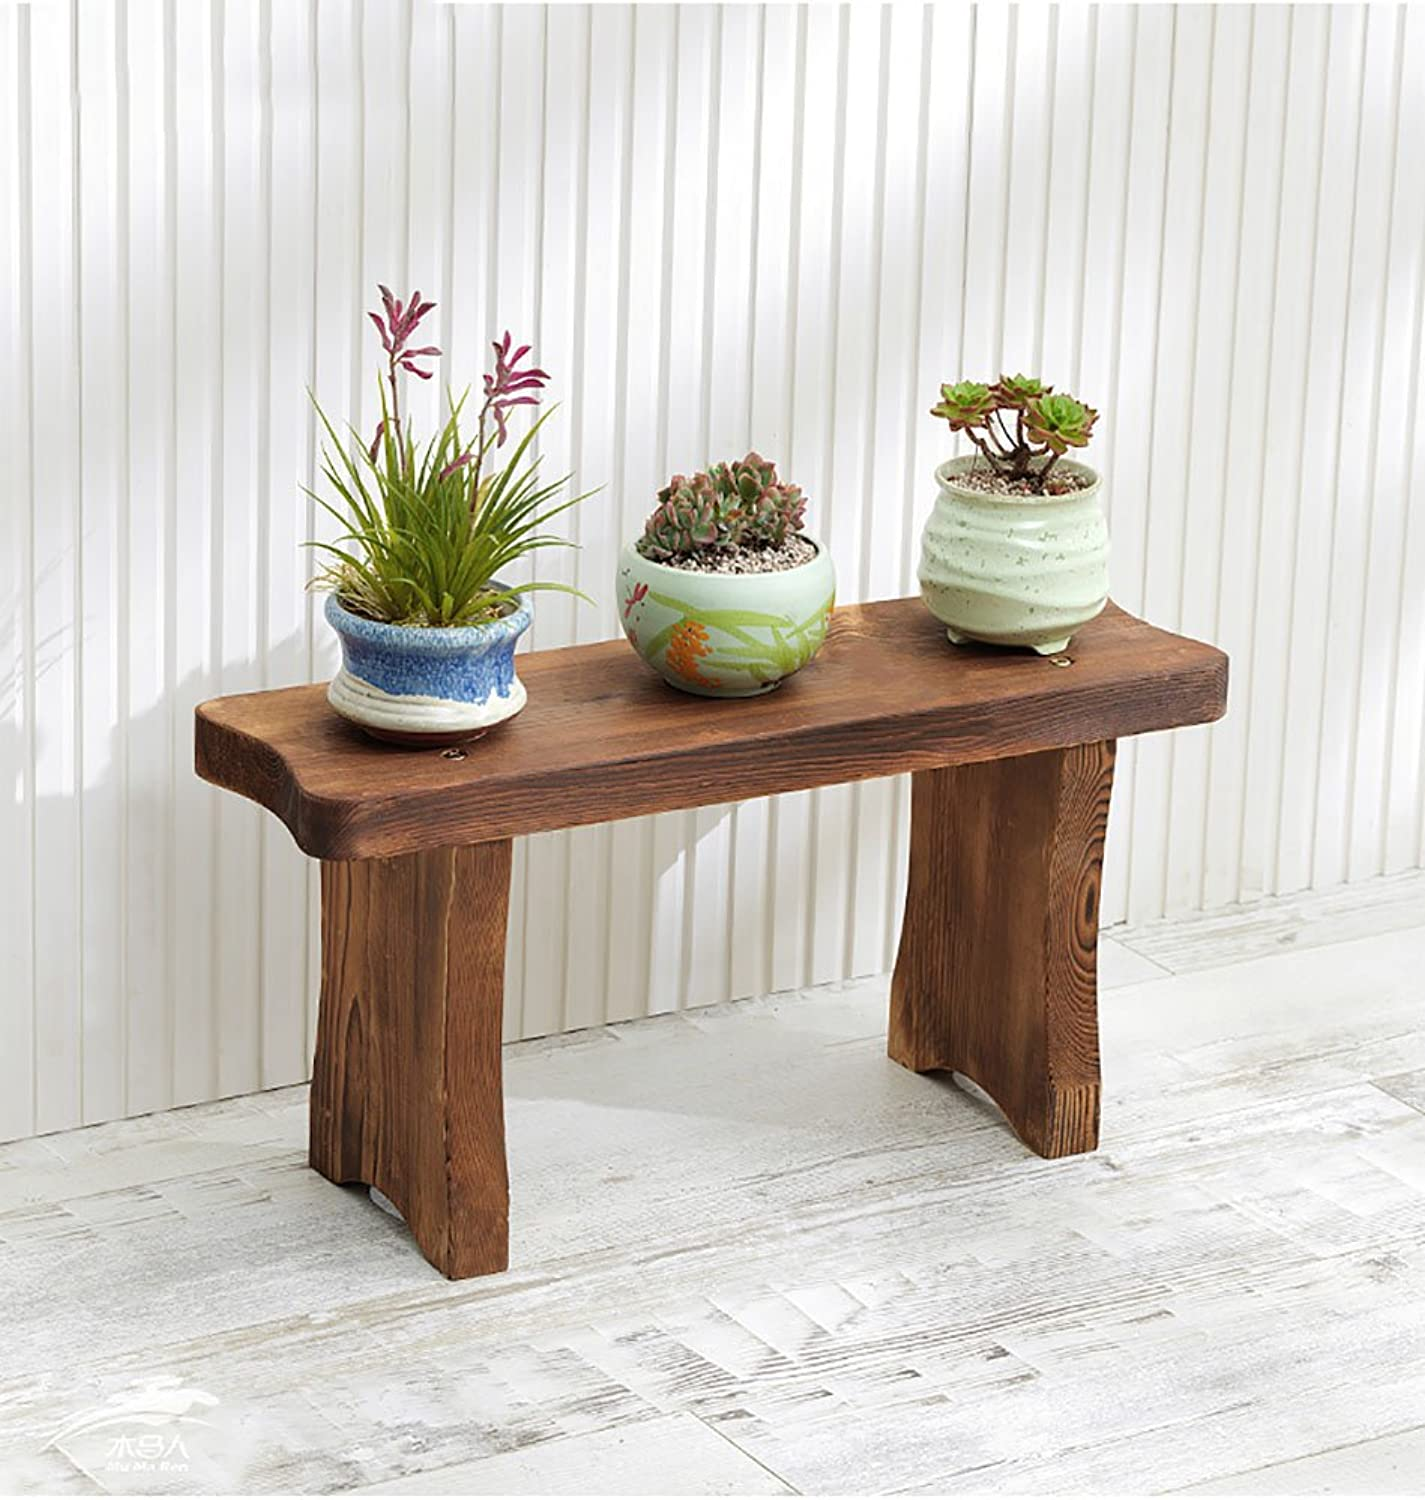 QING MEI Flower Stand Wooden Stepped Balcony Flower Shelf Living Room Solid Wood Multi-Storey Floor Space Flower Pot A++ (Size   60×17×30cm)